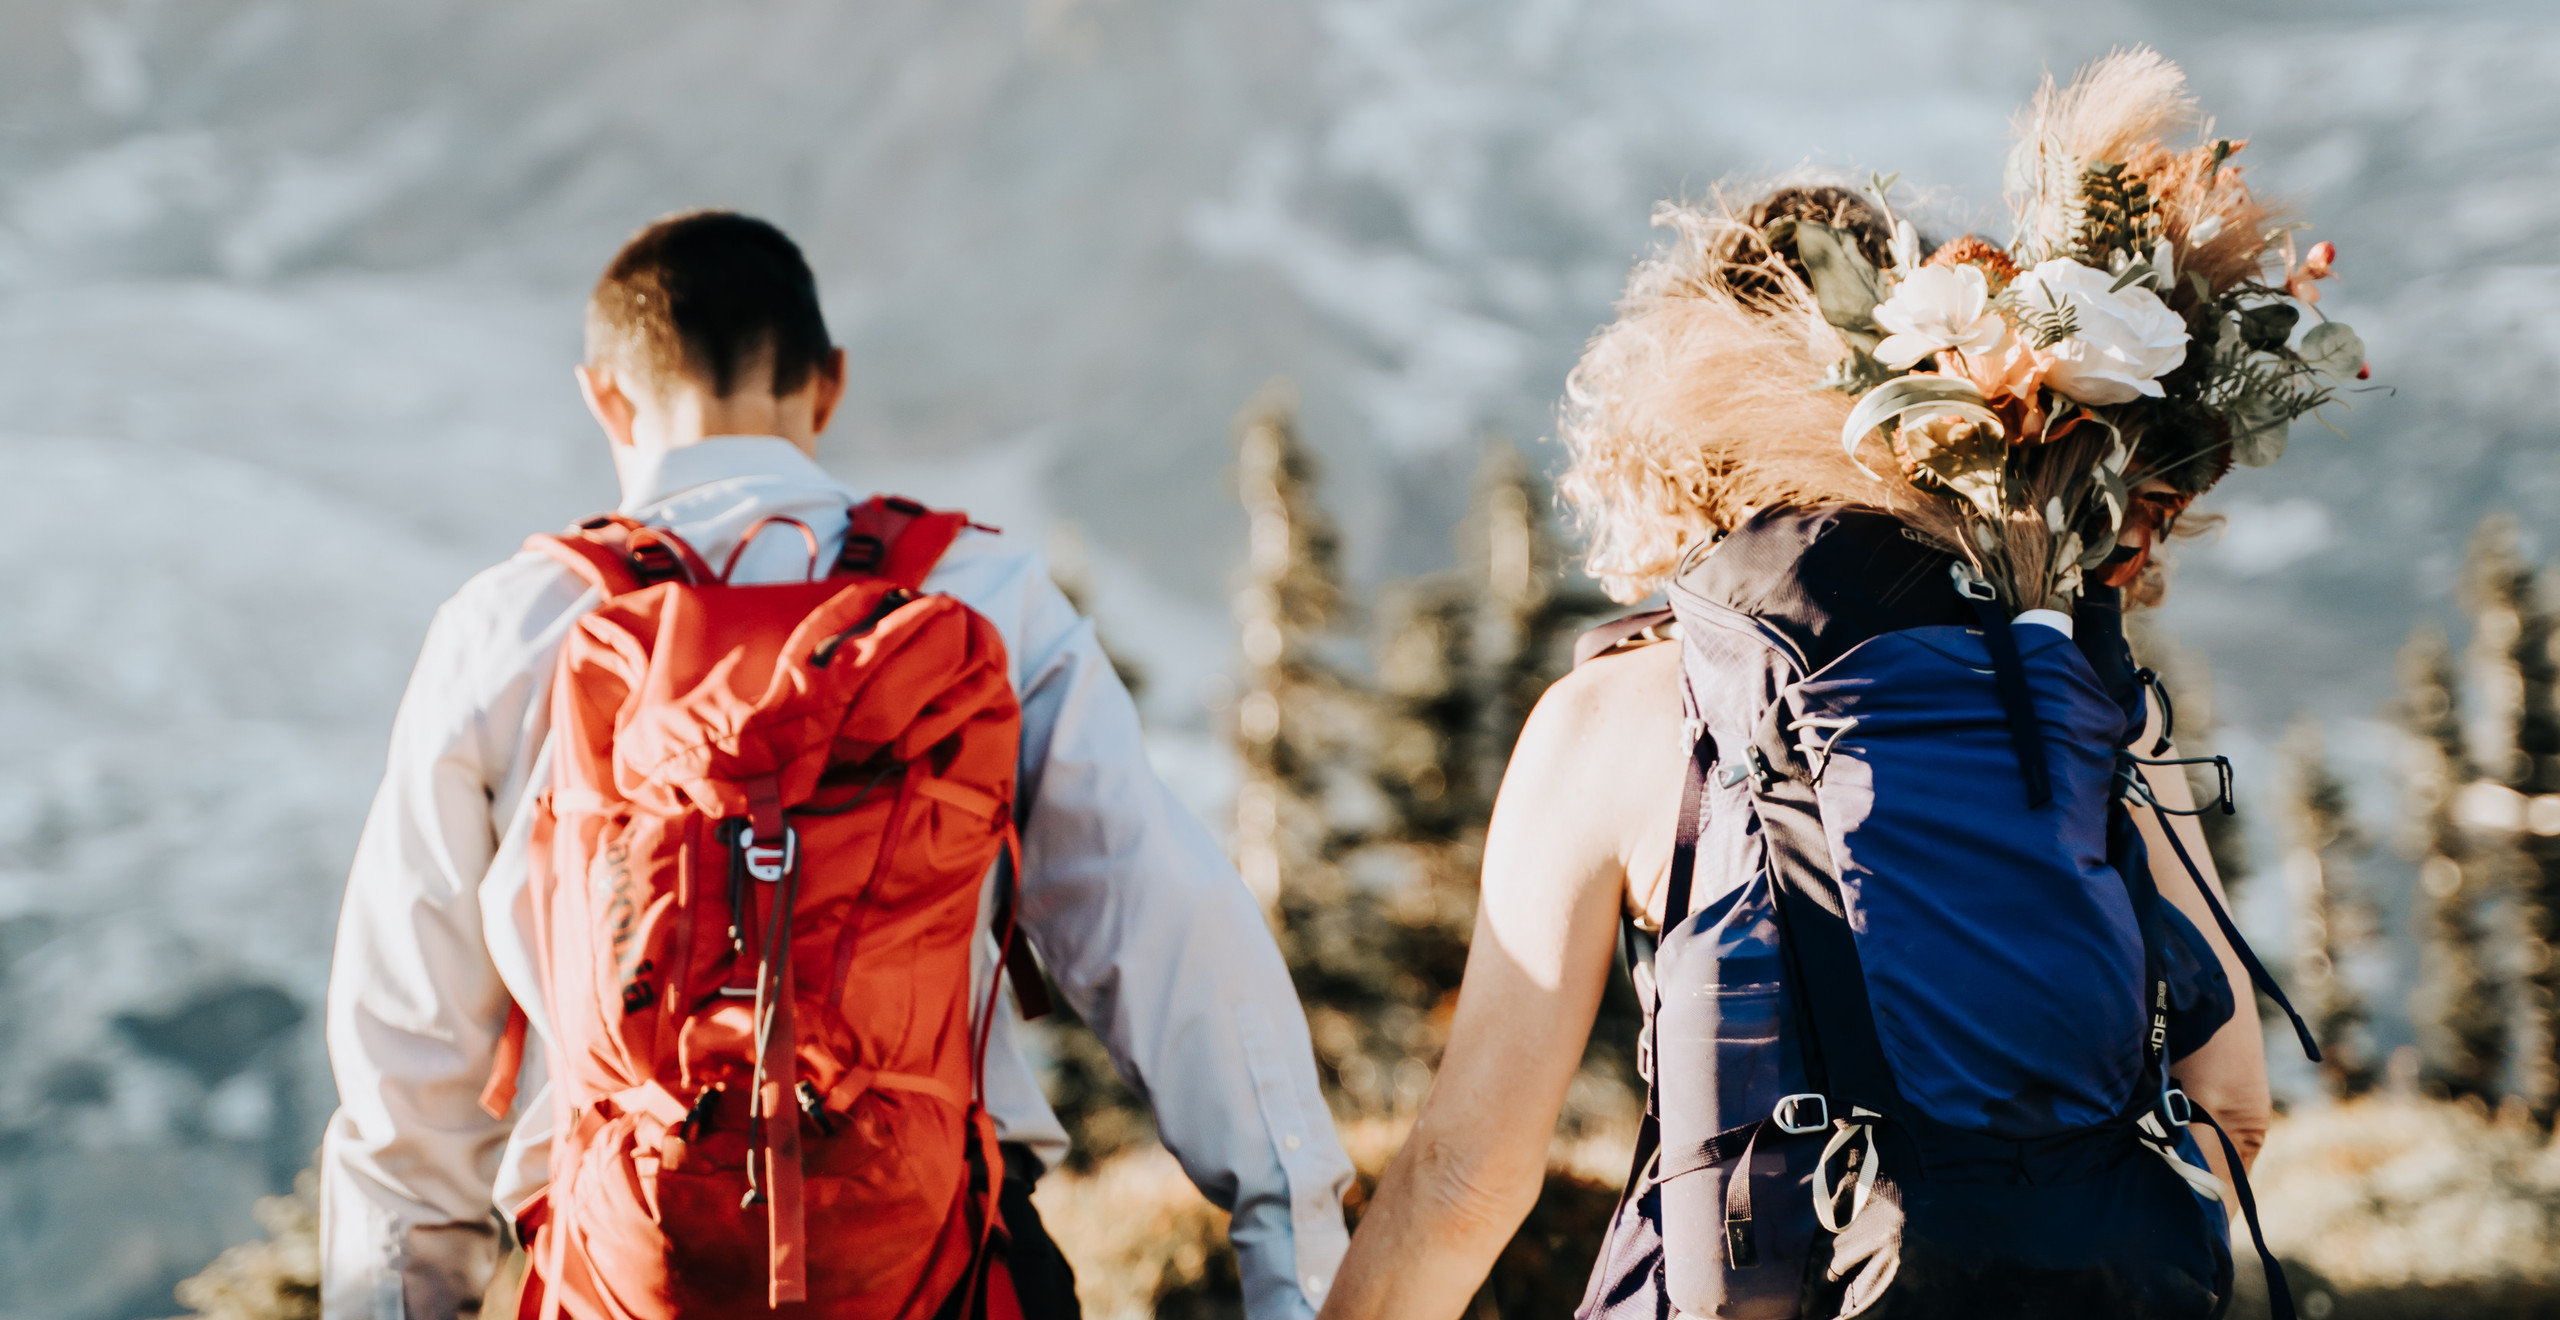 Bride and Groom holding hands hiking up to Mt. Rainier with hiking backpacks on.  Wedding bouquet is hanging outside the backpack and Mt. Rainier is in the background